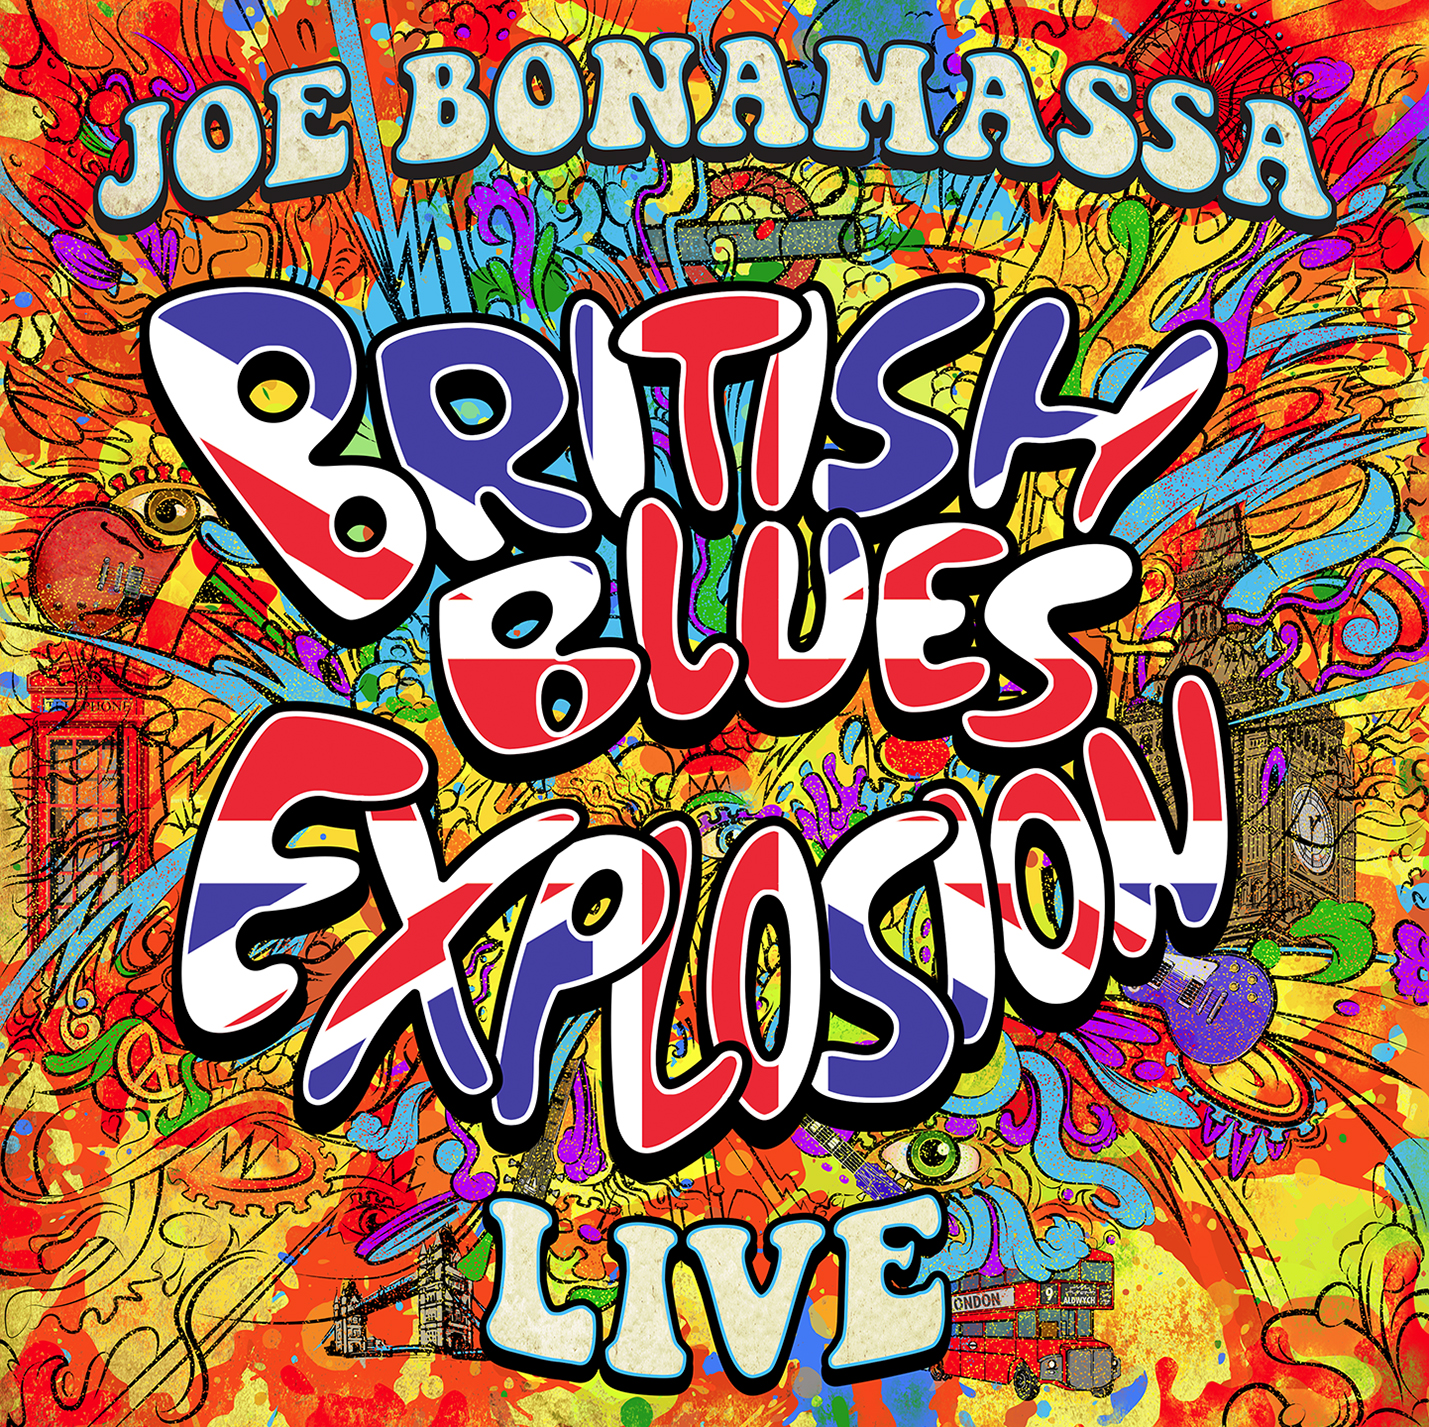 <h5>Joe Bonamassa<br>British Blues Explosion Live</h5>